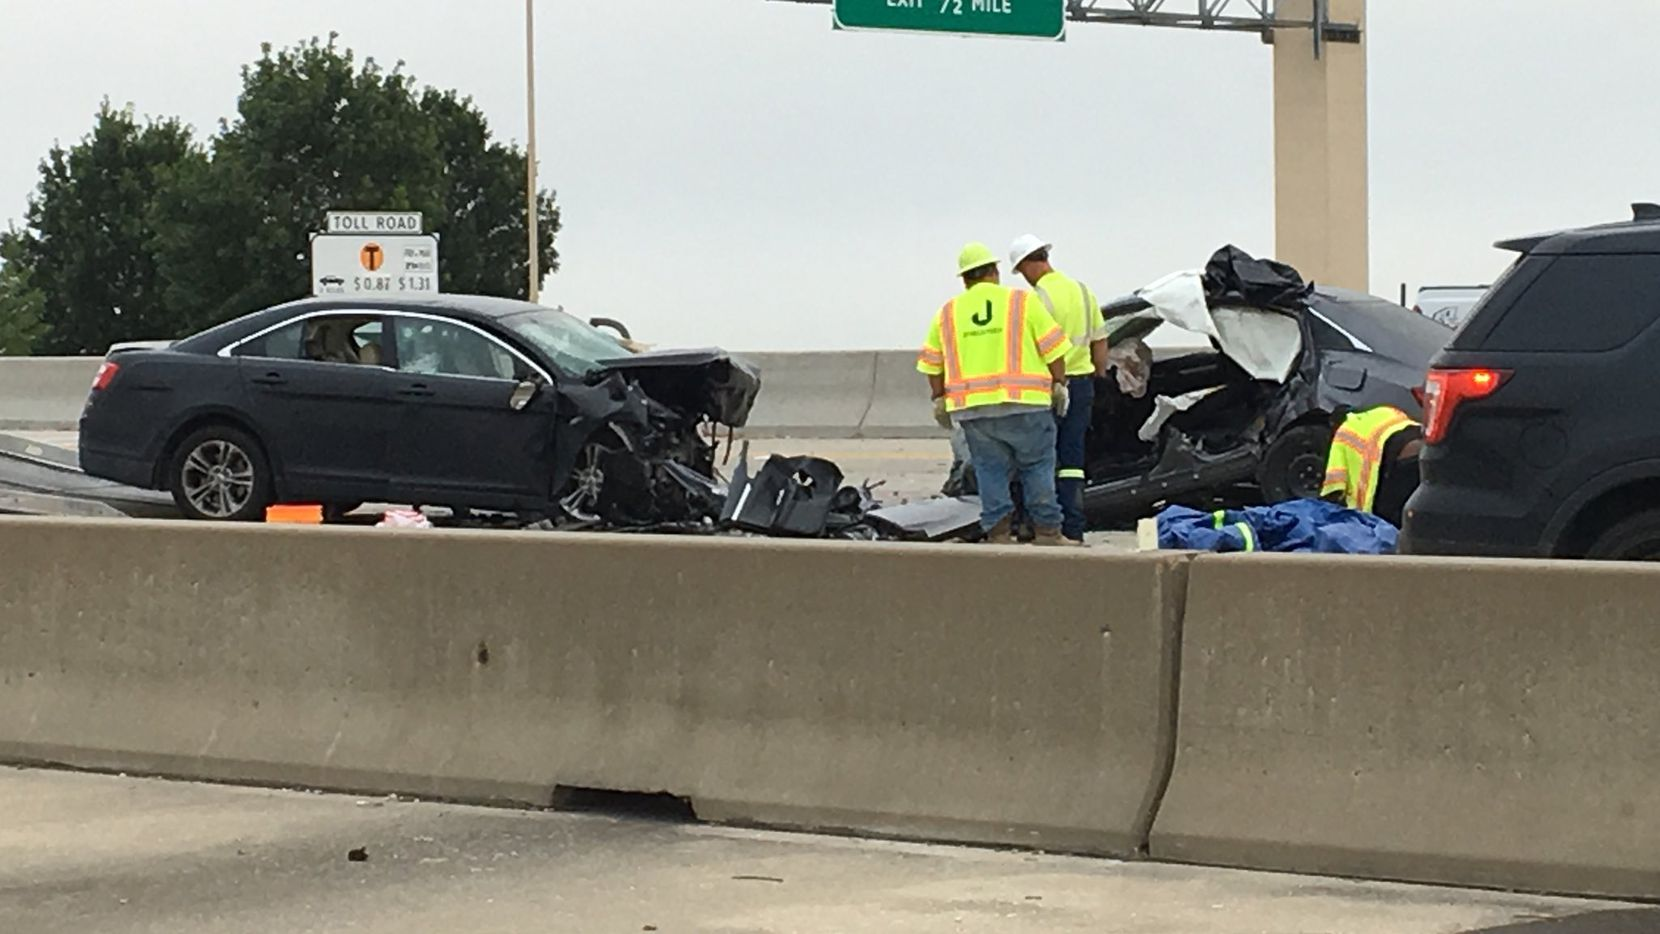 2 drivers killed in wrong-way crash on Bush Turnpike in